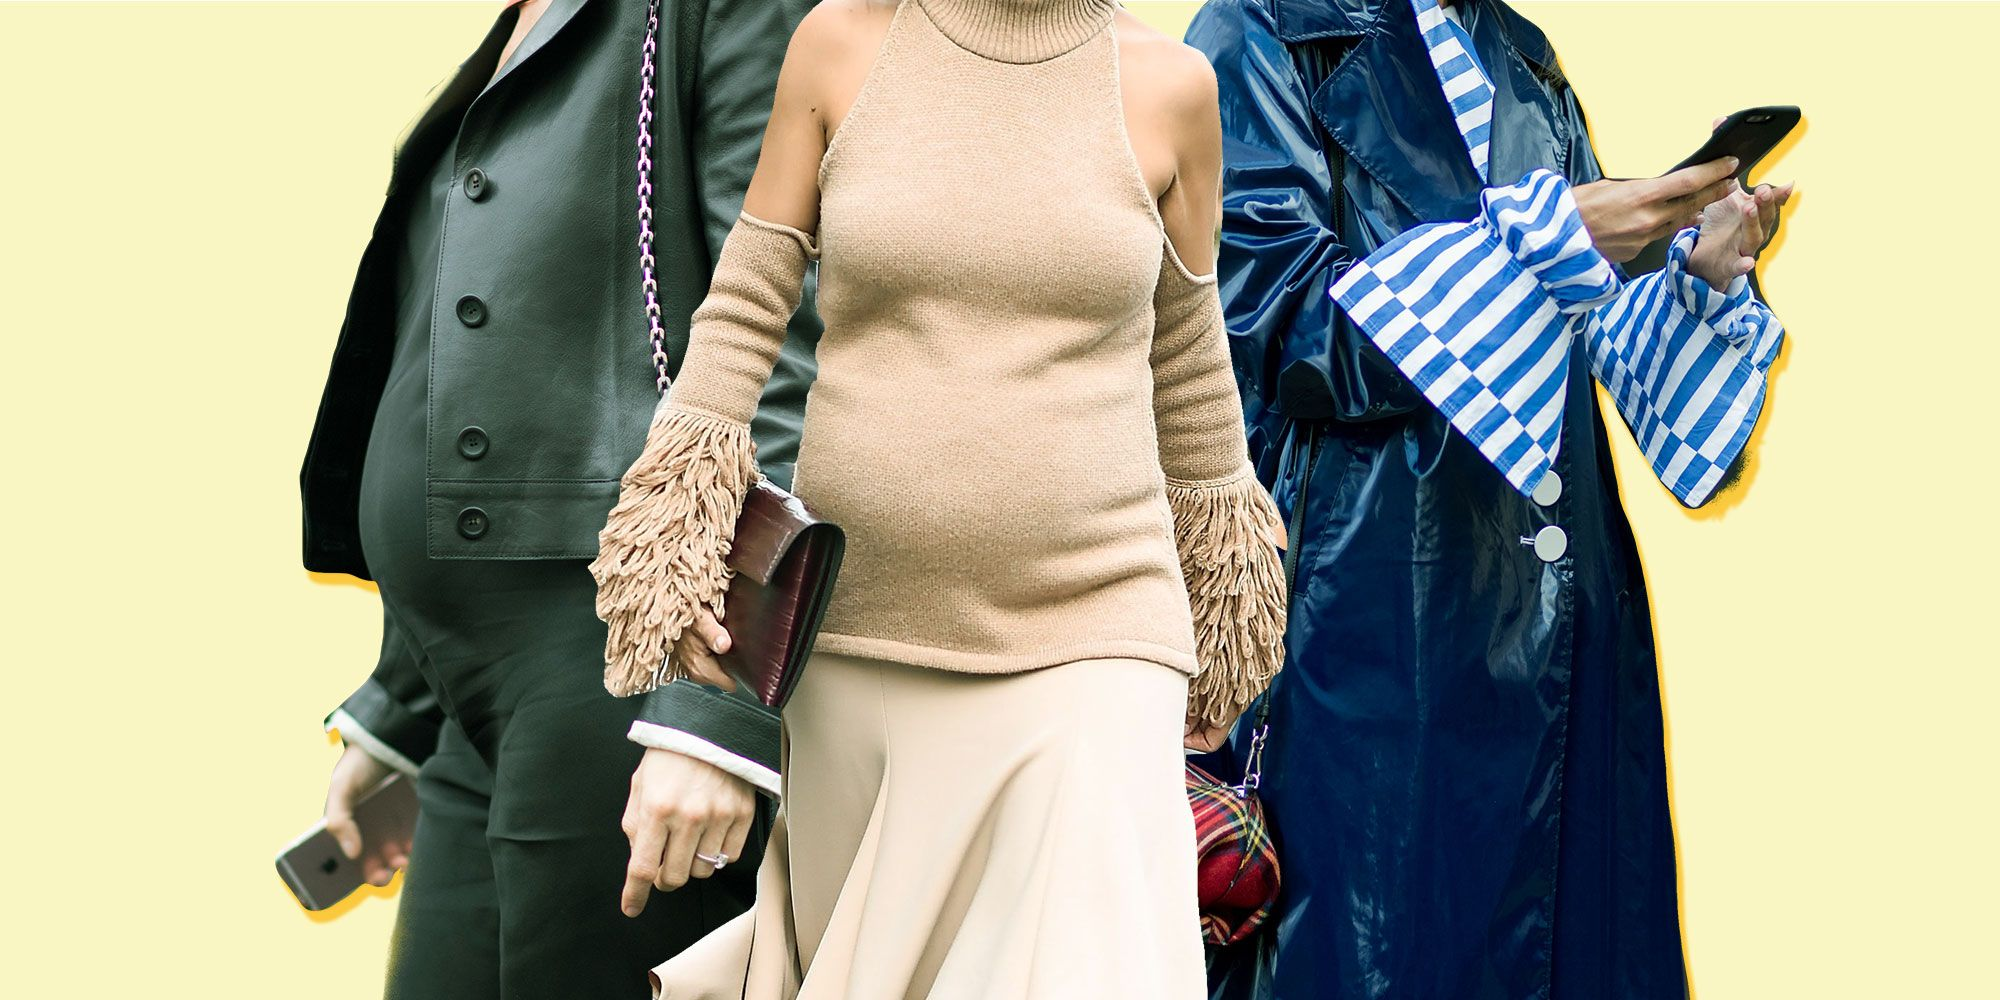 How To Dress Your Bump: Fashion Insiders Address Maternity Style